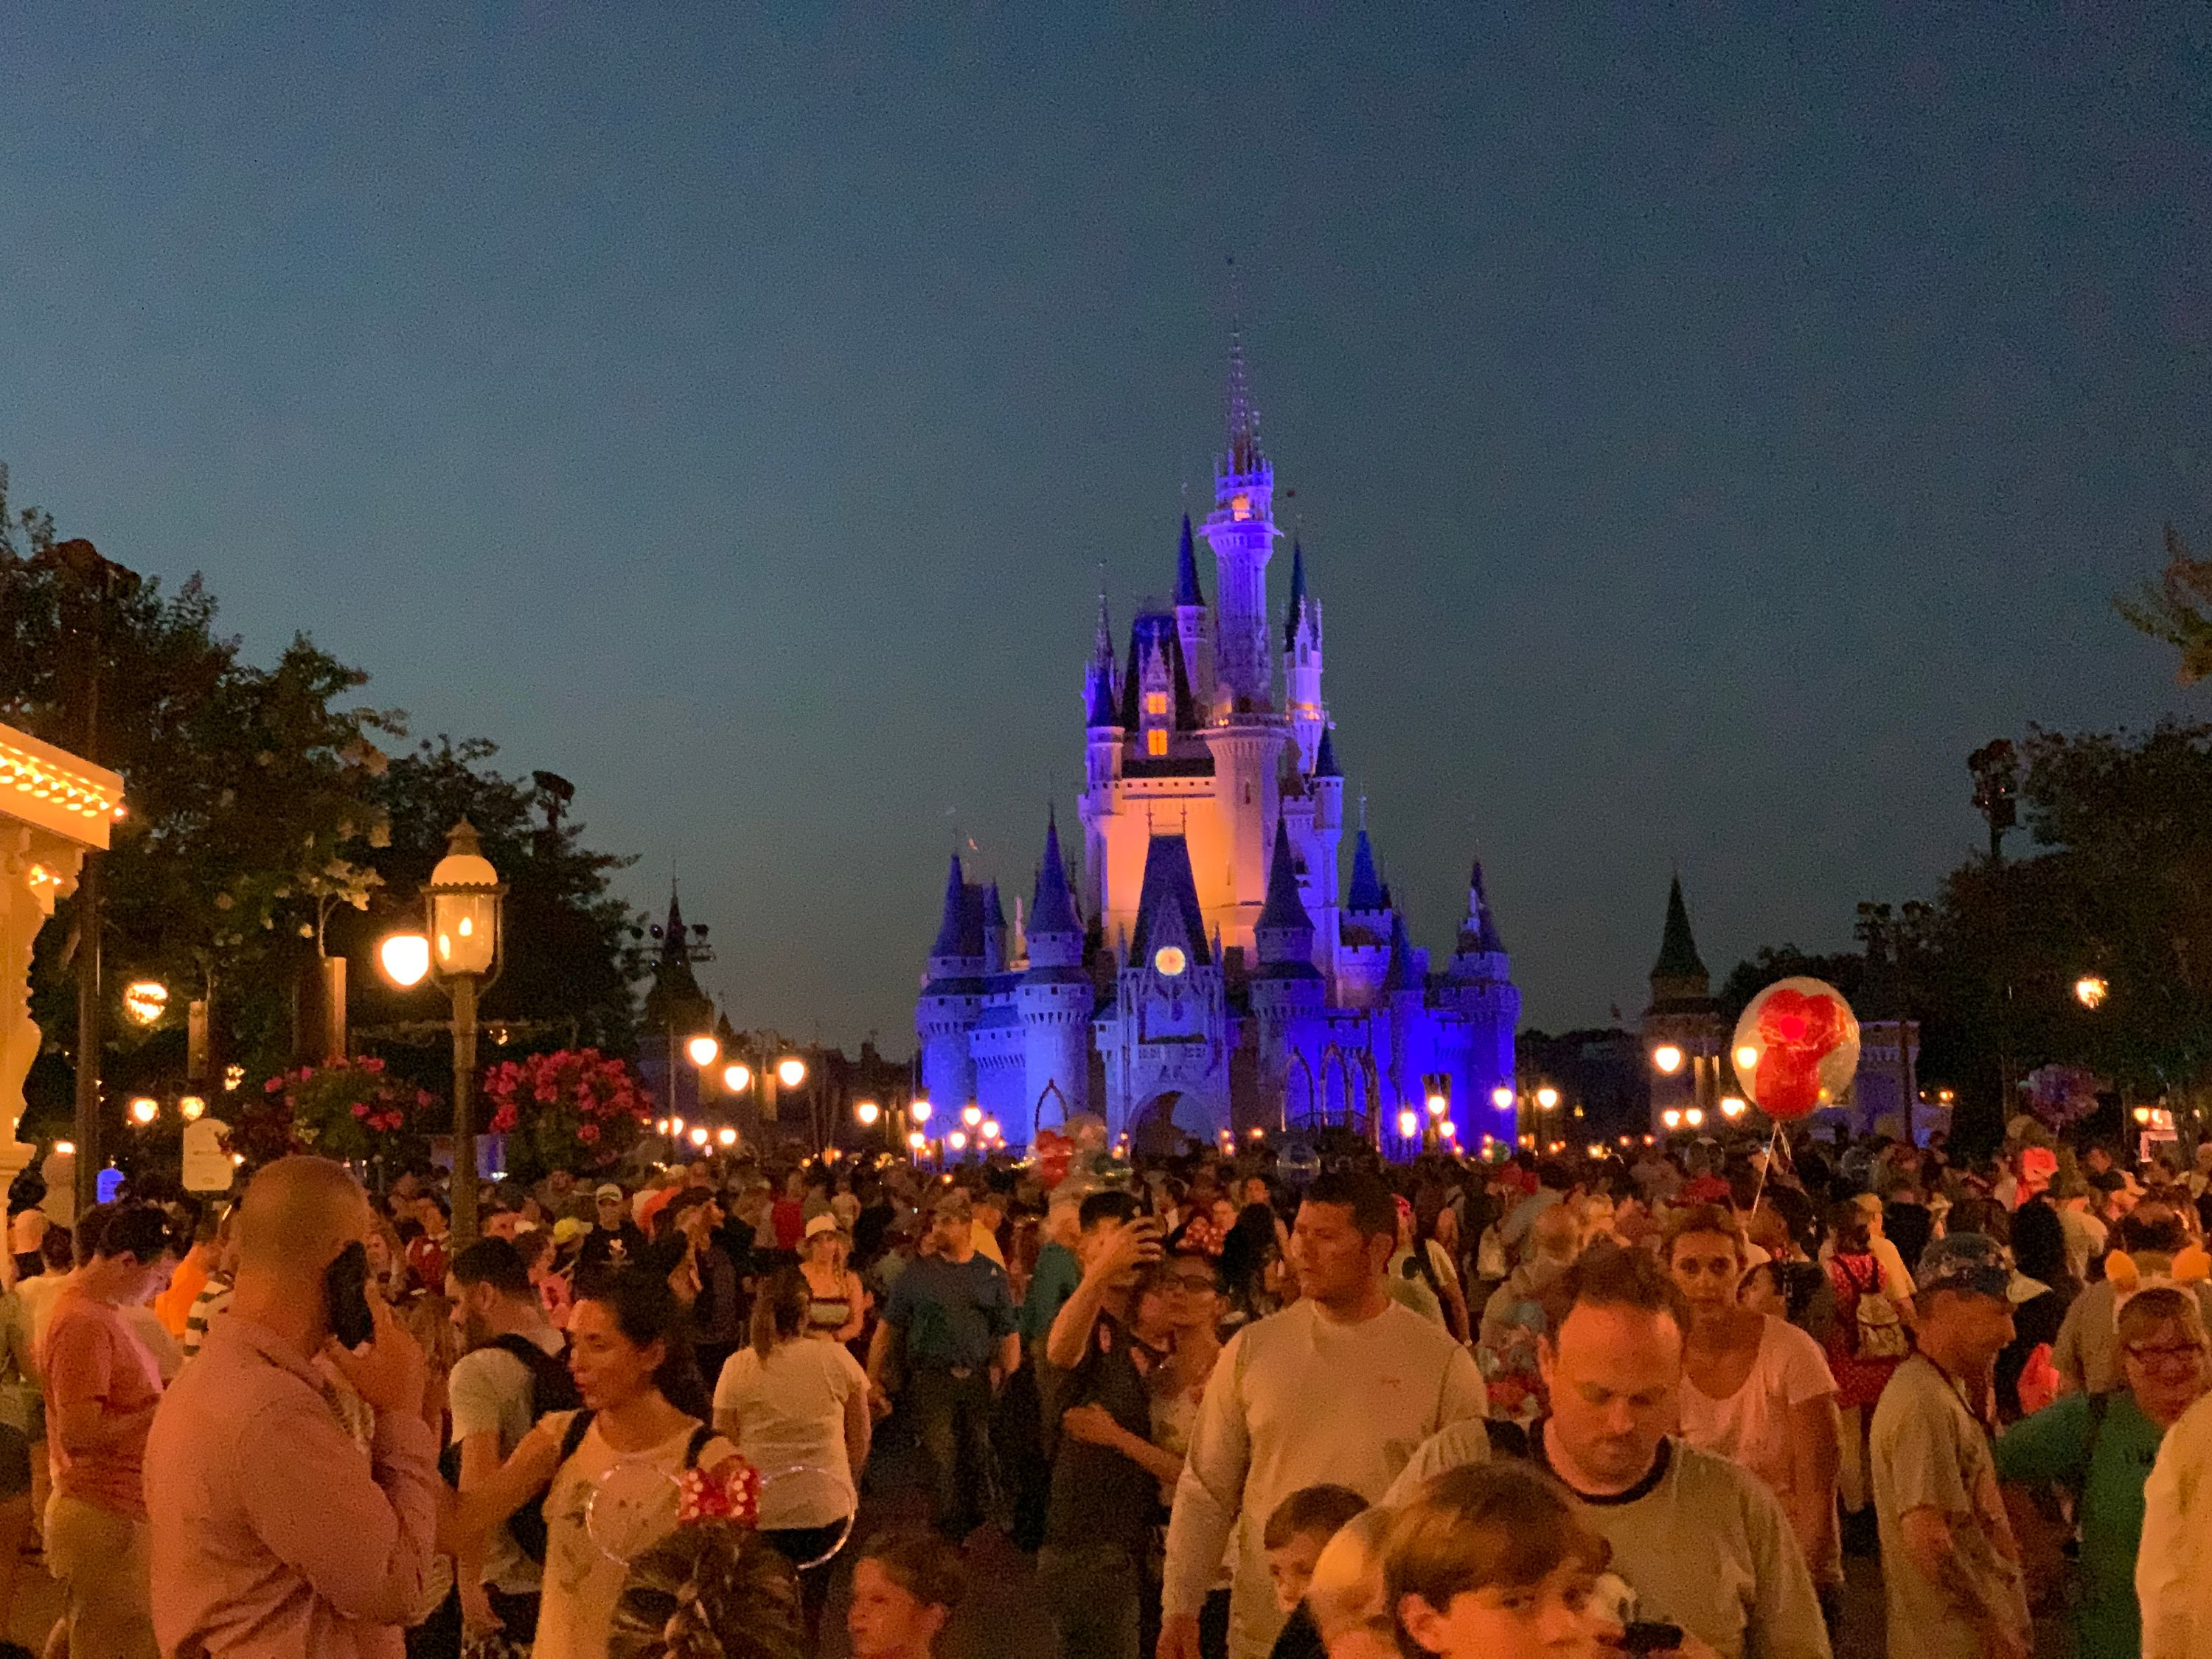 Cinderella's Castle is lit up at night behind a crowd of people on Disney World's Main Street USA.